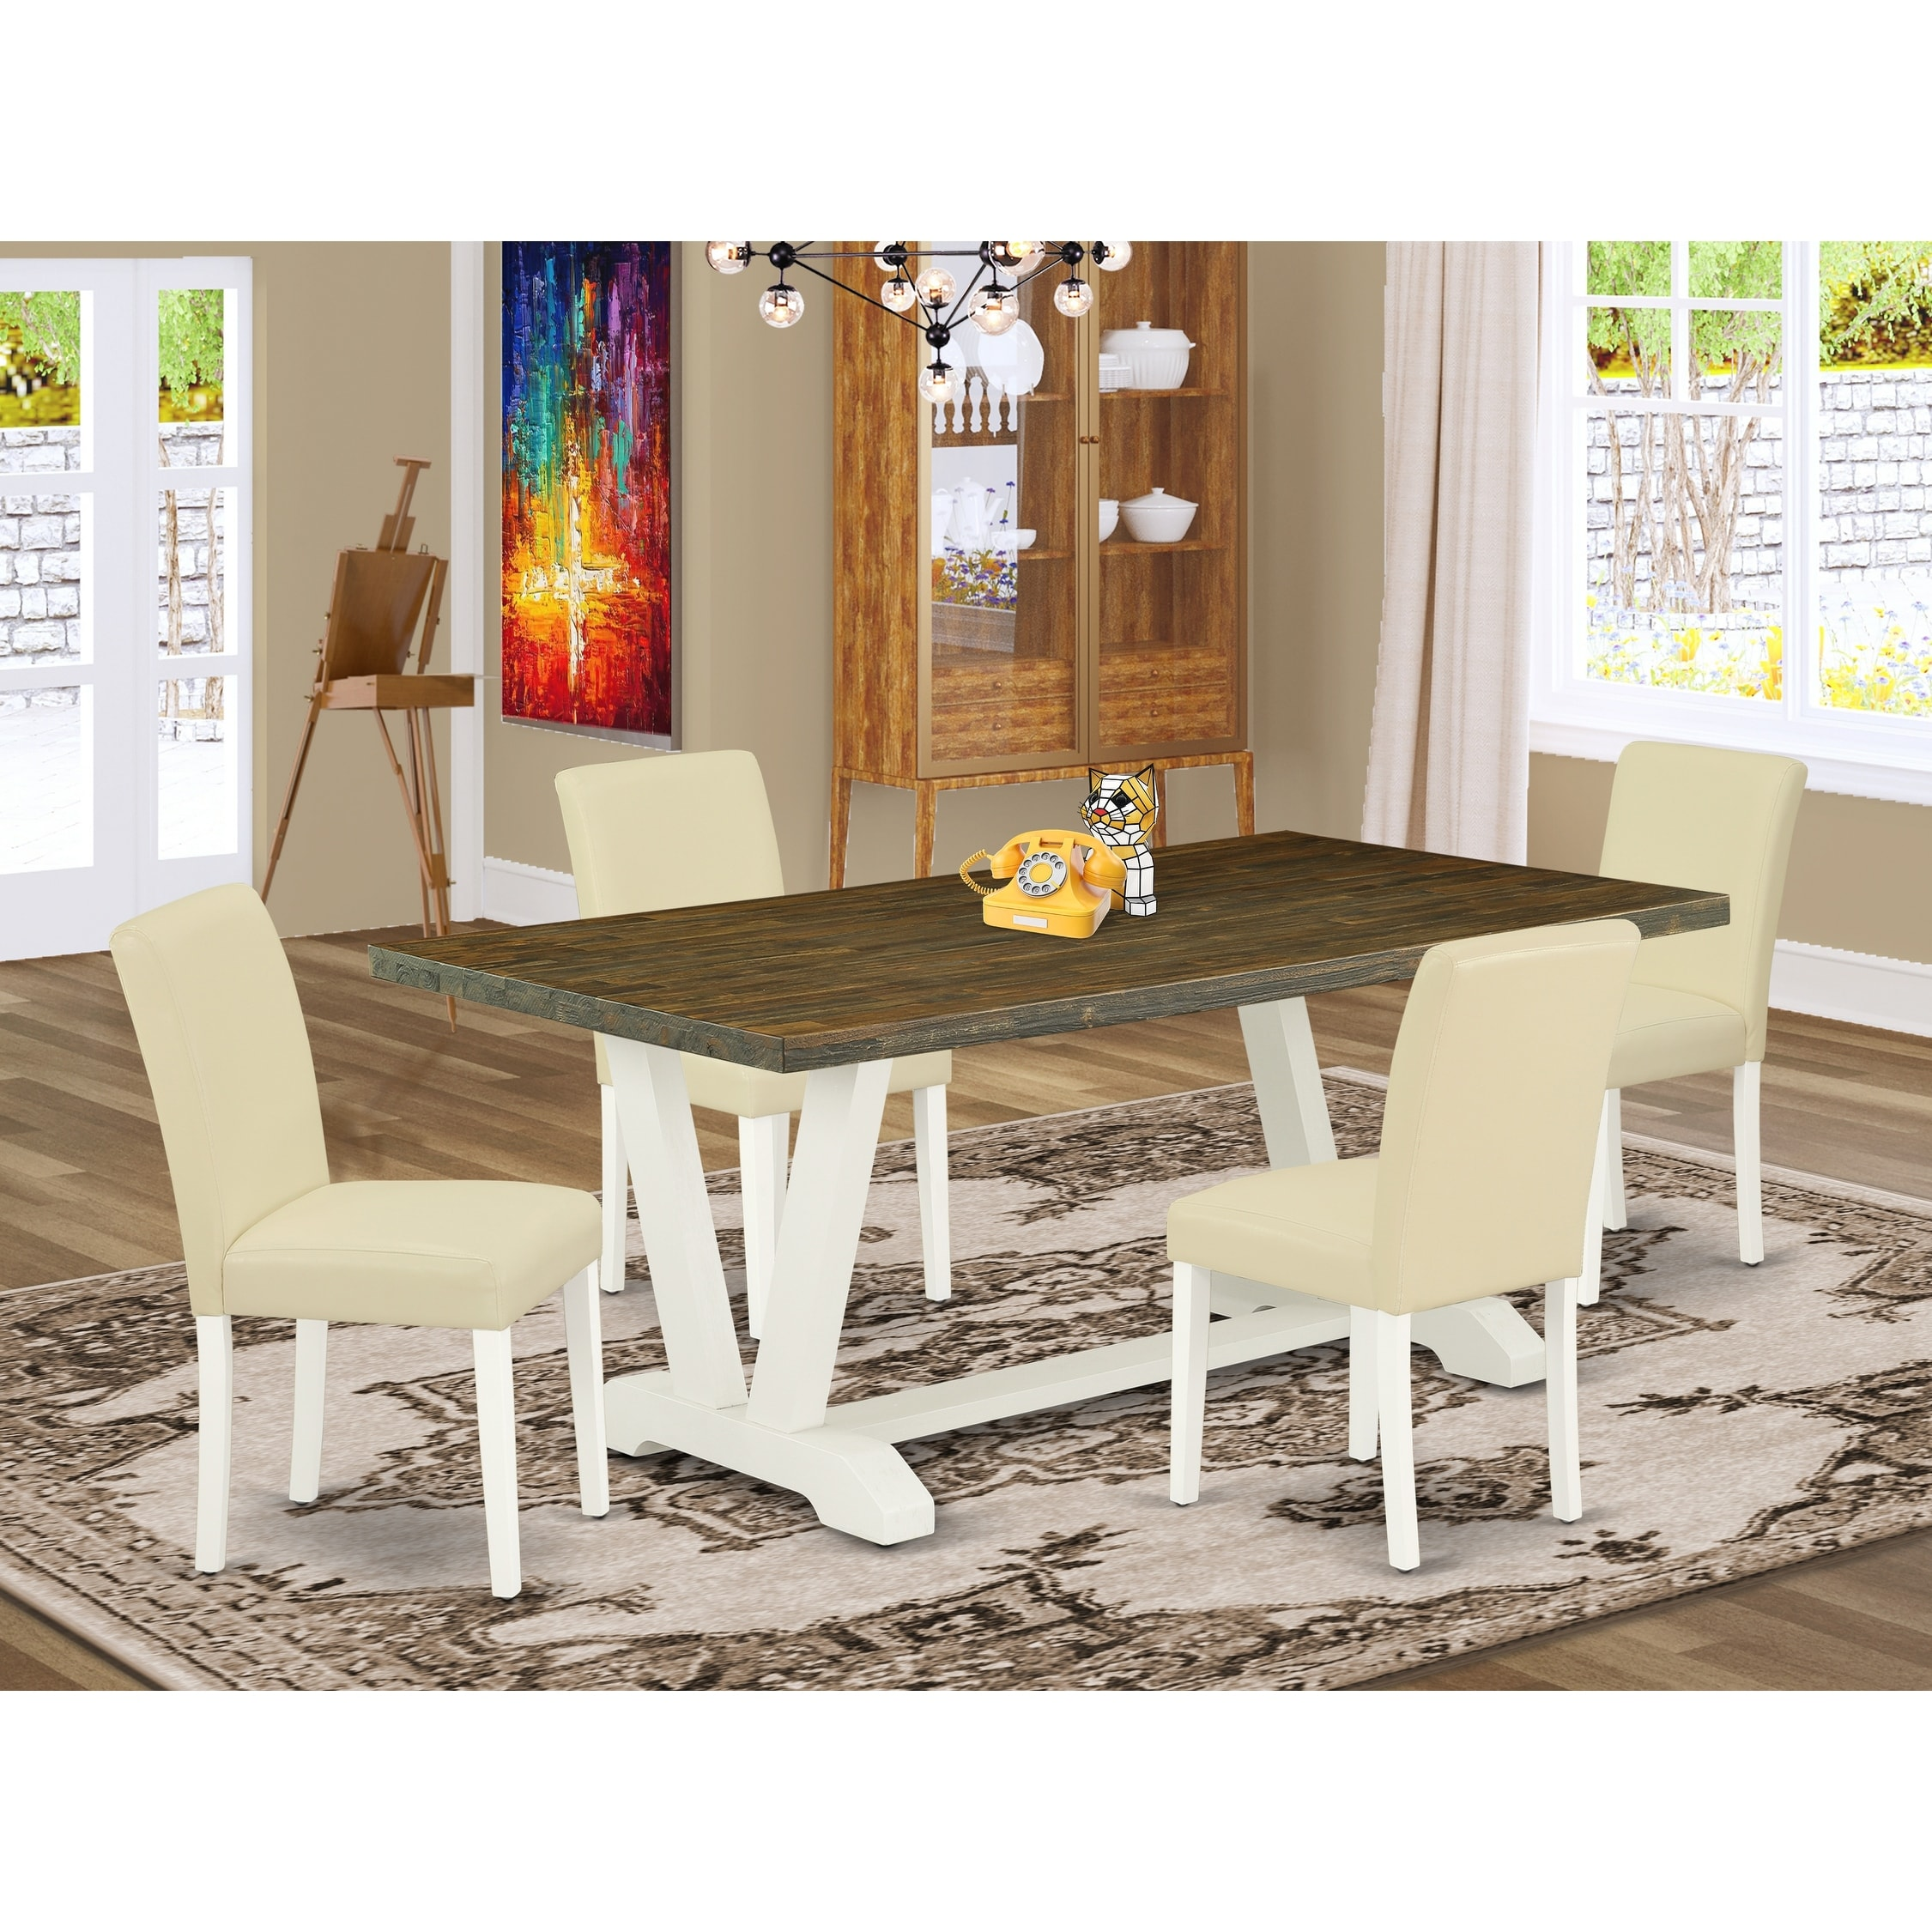 V077ab264 5 5 Piece Modern Dining Set A Distressed Jacobean Dining Table And 4 Pu Leather Parson Dining Chairs Overstock 32845657